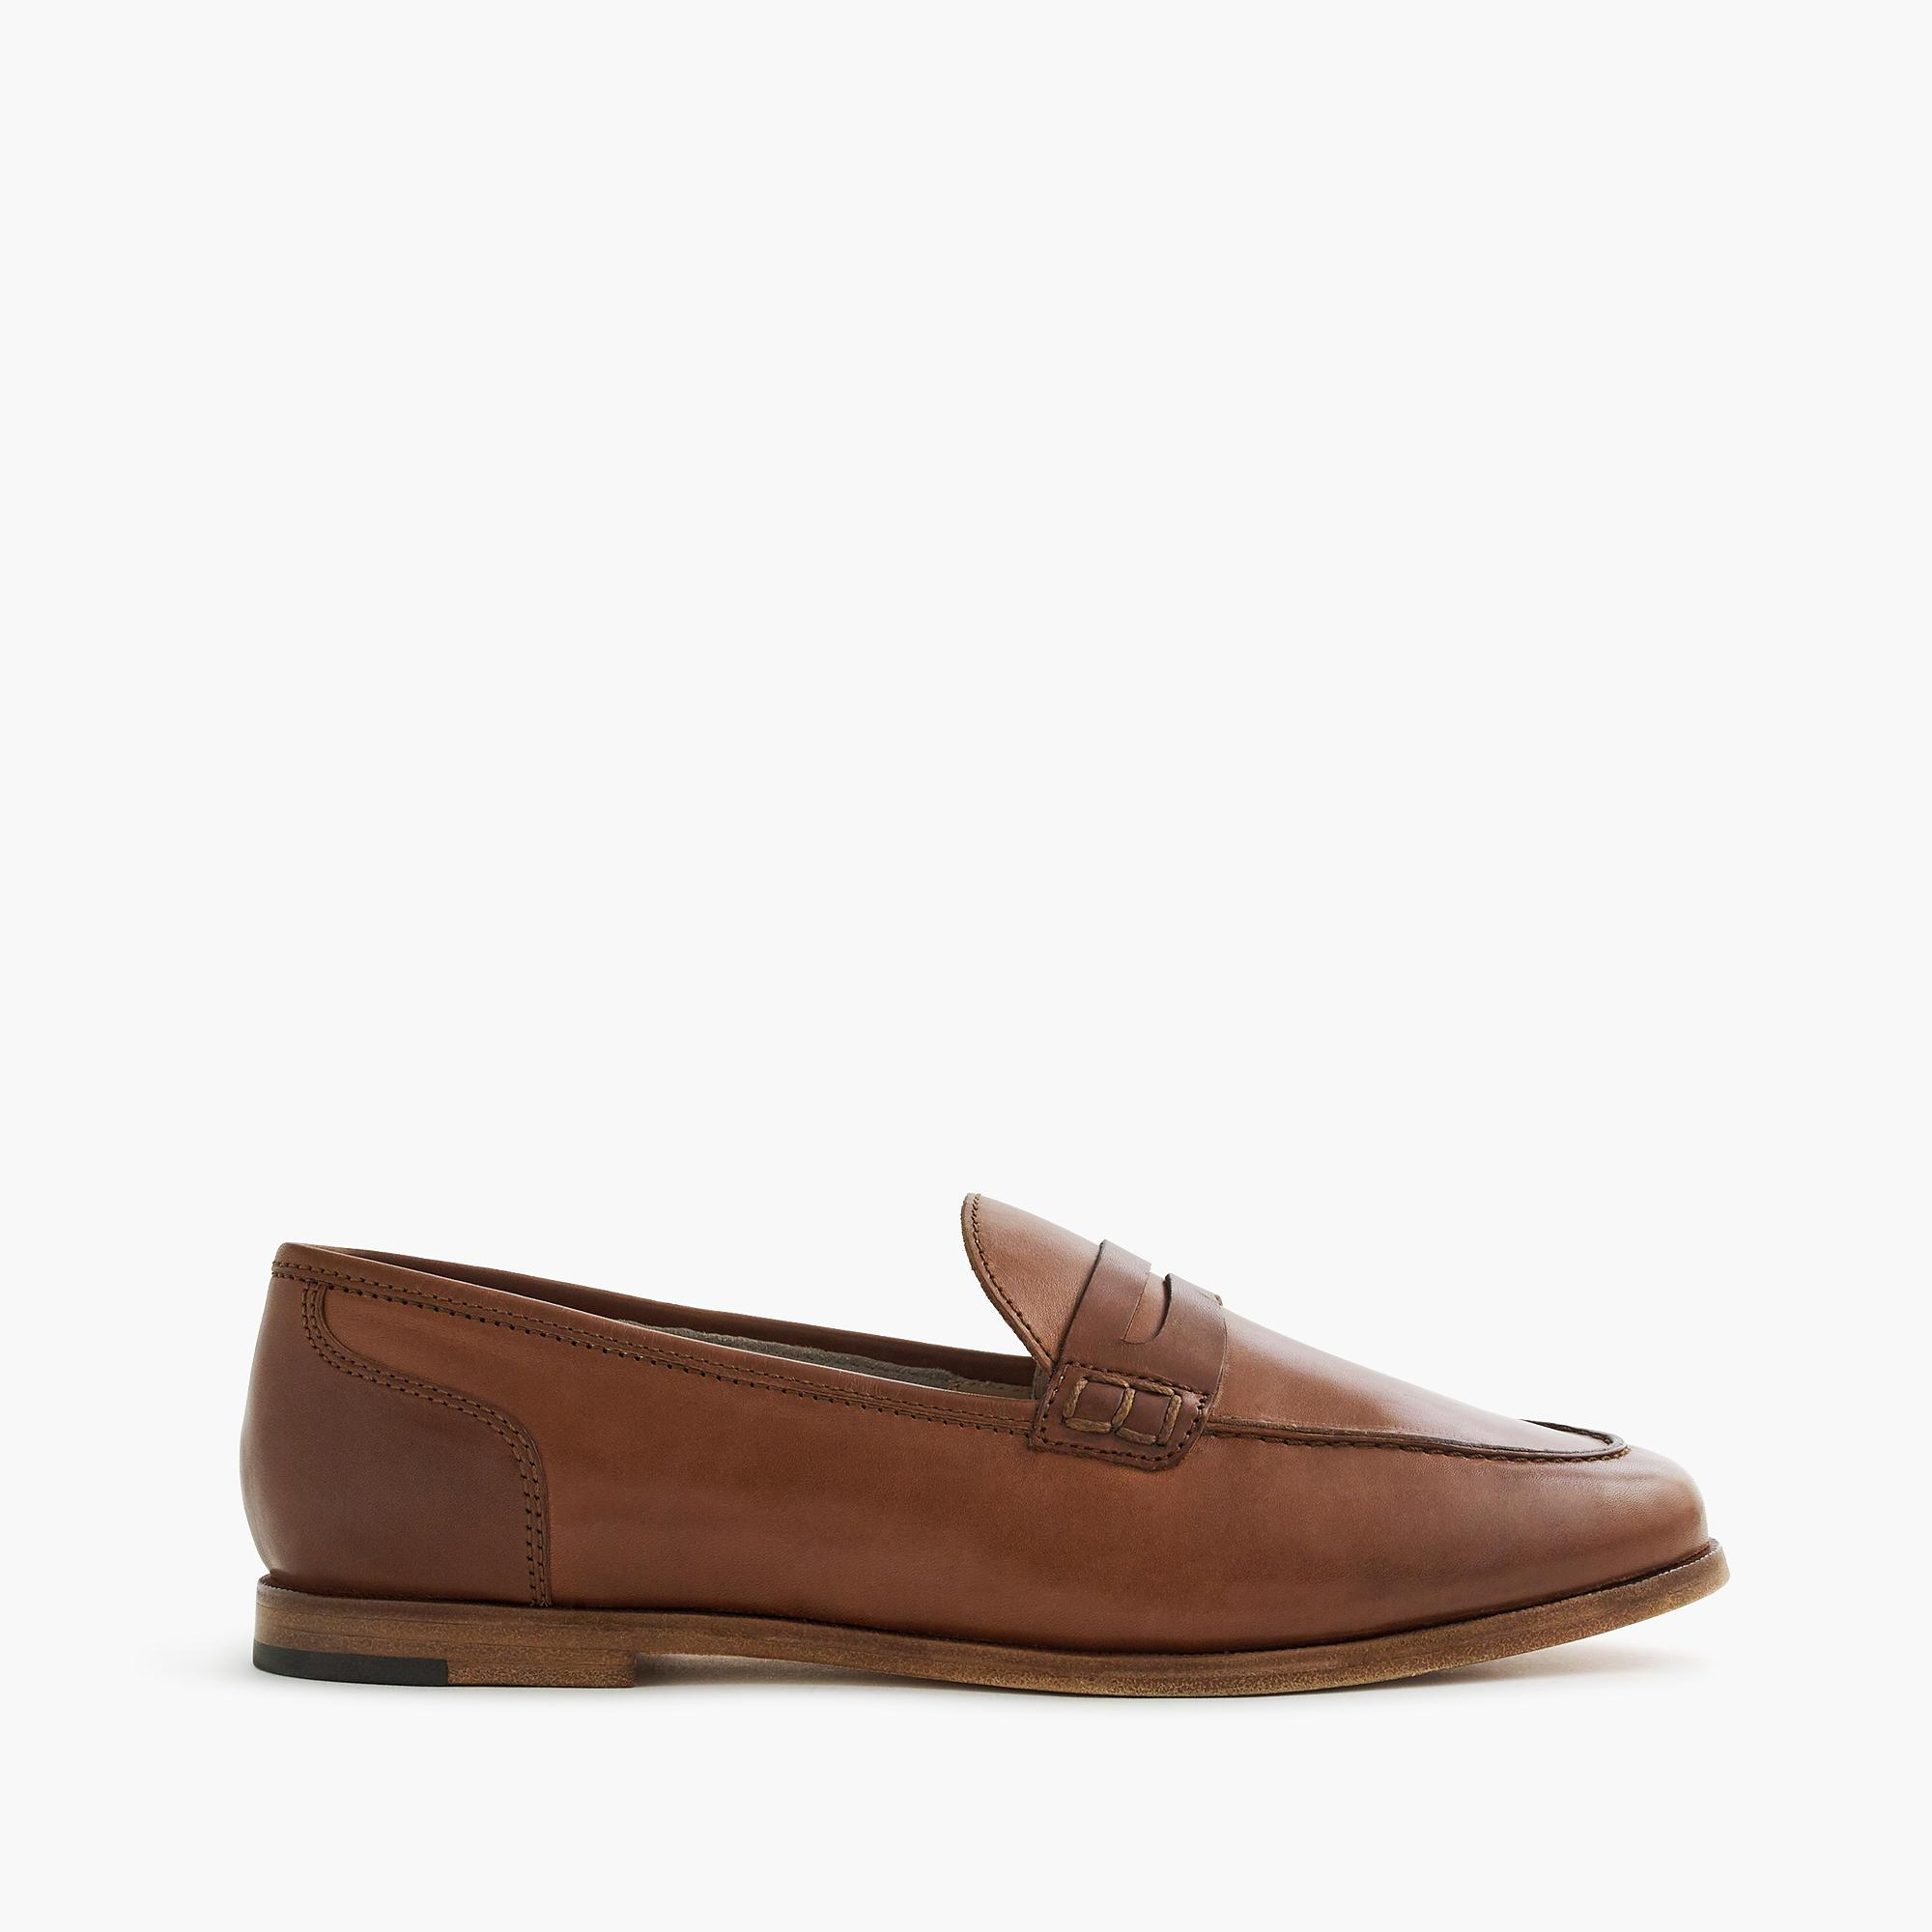 c65e7884672 J.Crew Ryan Penny Loafers In Leather in Brown - Save 16% - Lyst